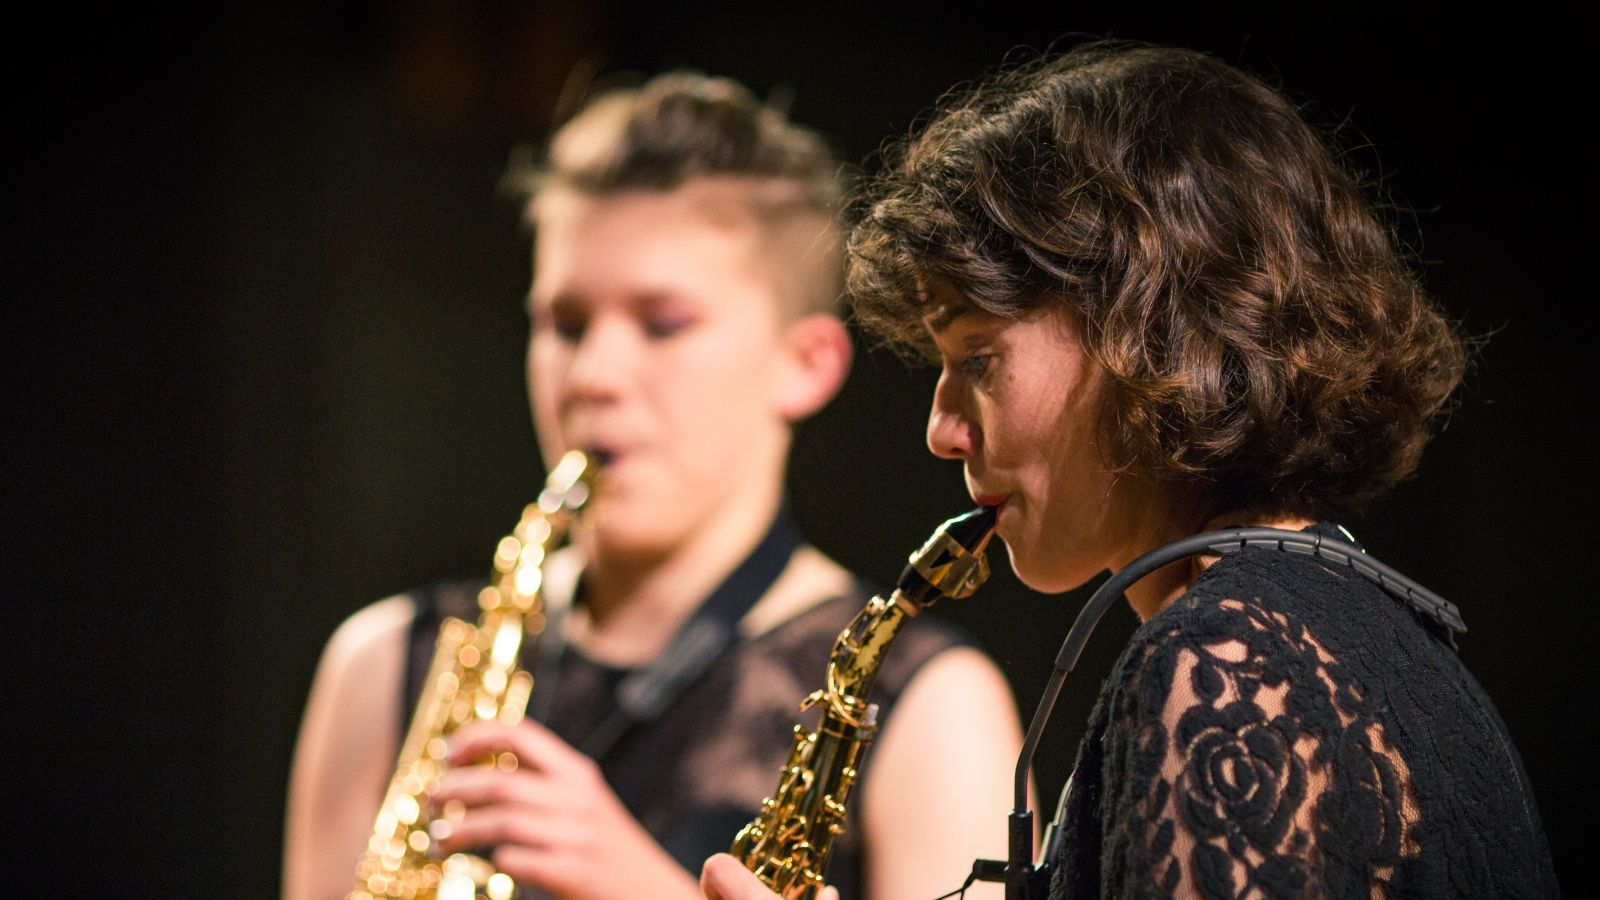 Two musicians playing saxophones